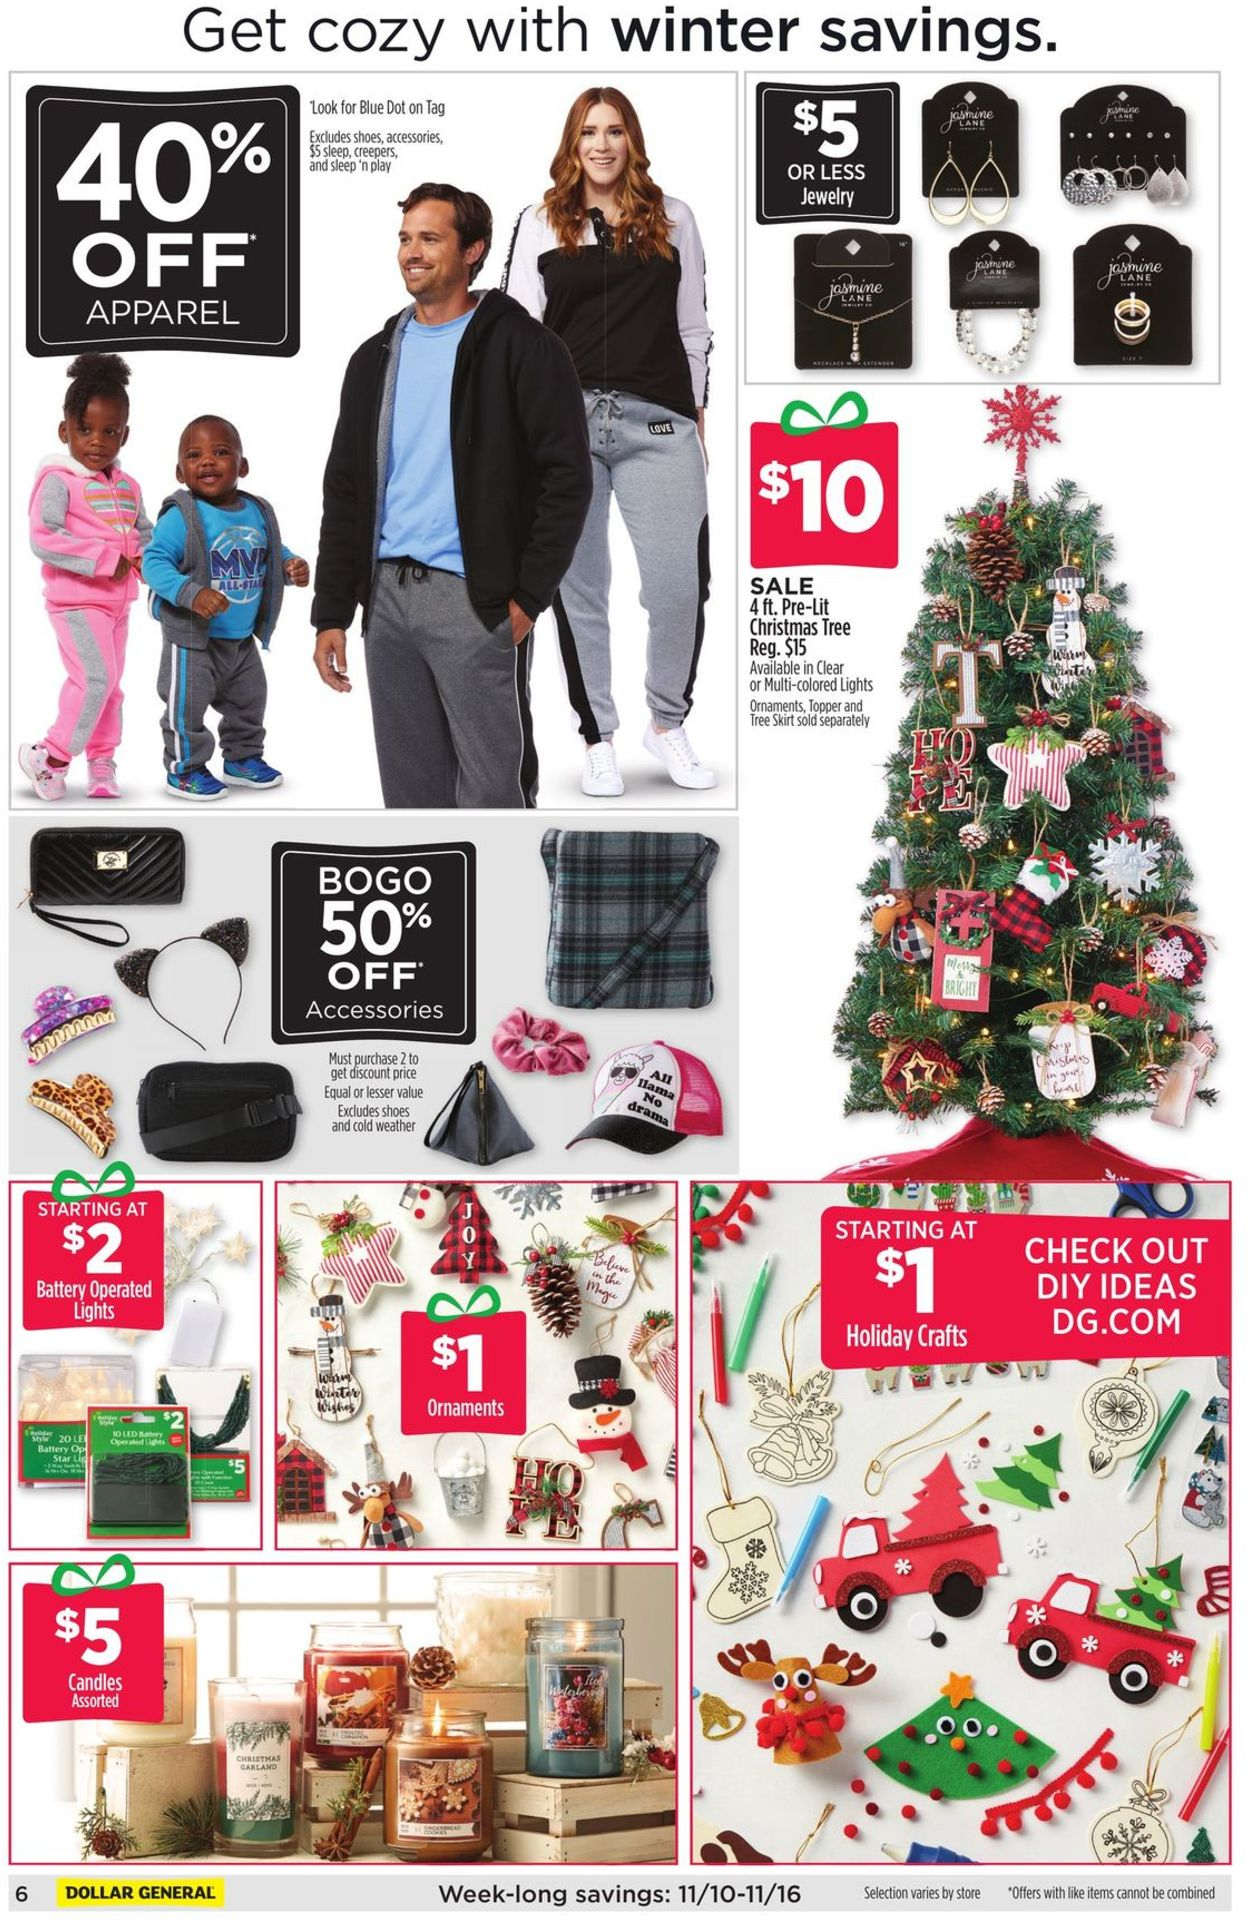 Dollar General Current weekly ad 11/10